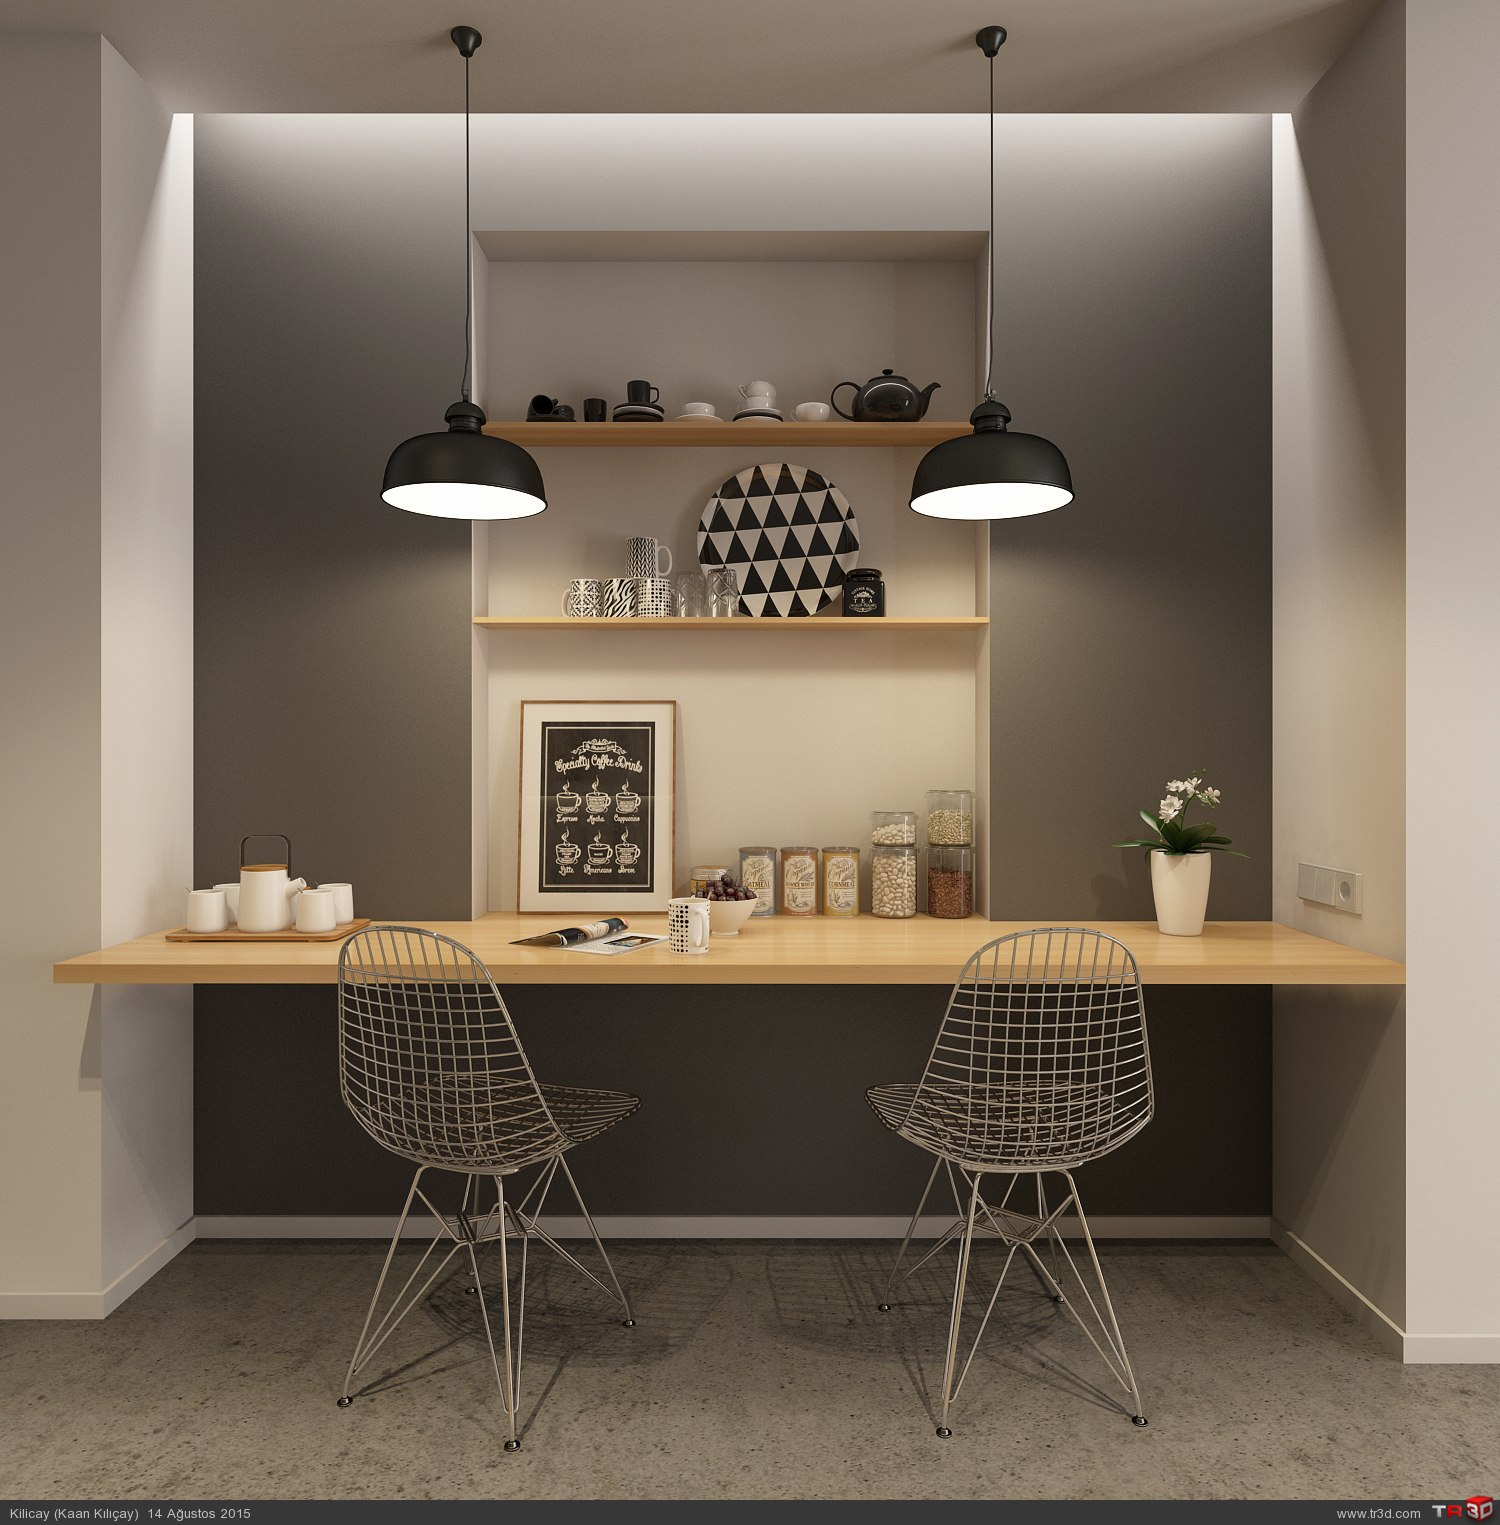 Kitchen - CGI 2